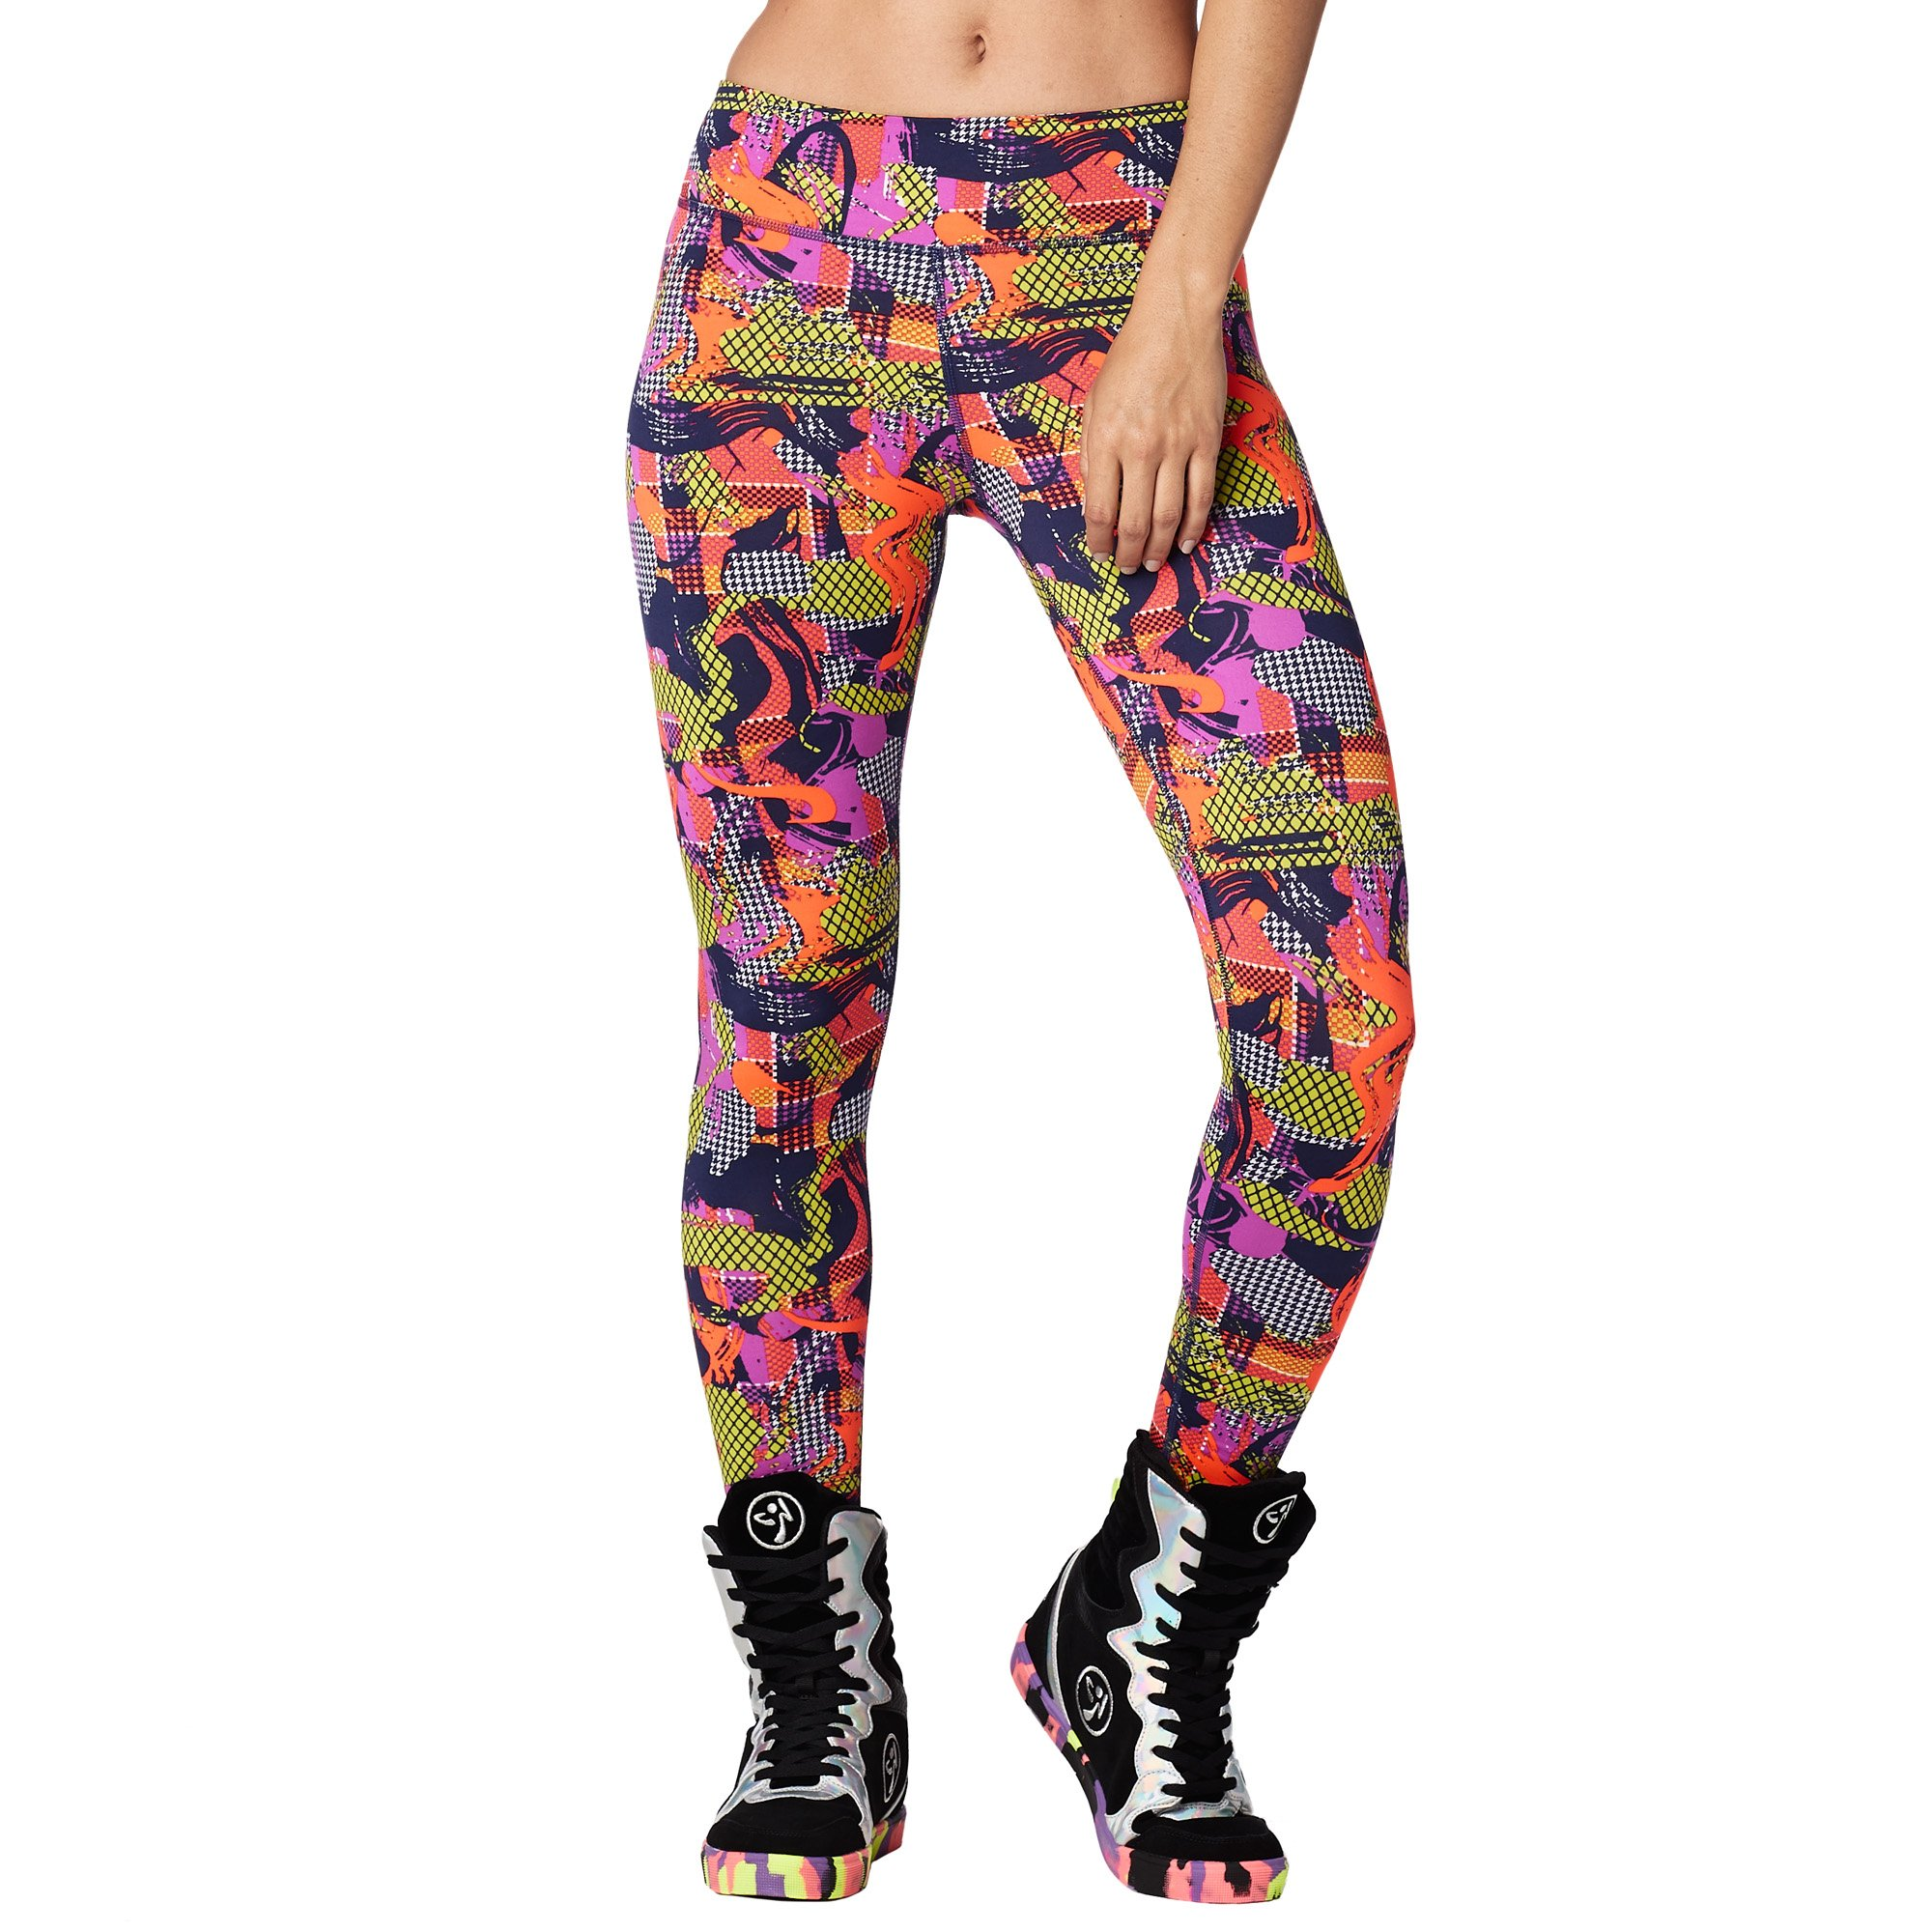 Zumba Women's Wide Waistband Print Legging with Compression, Coral Craze, L by Zumba